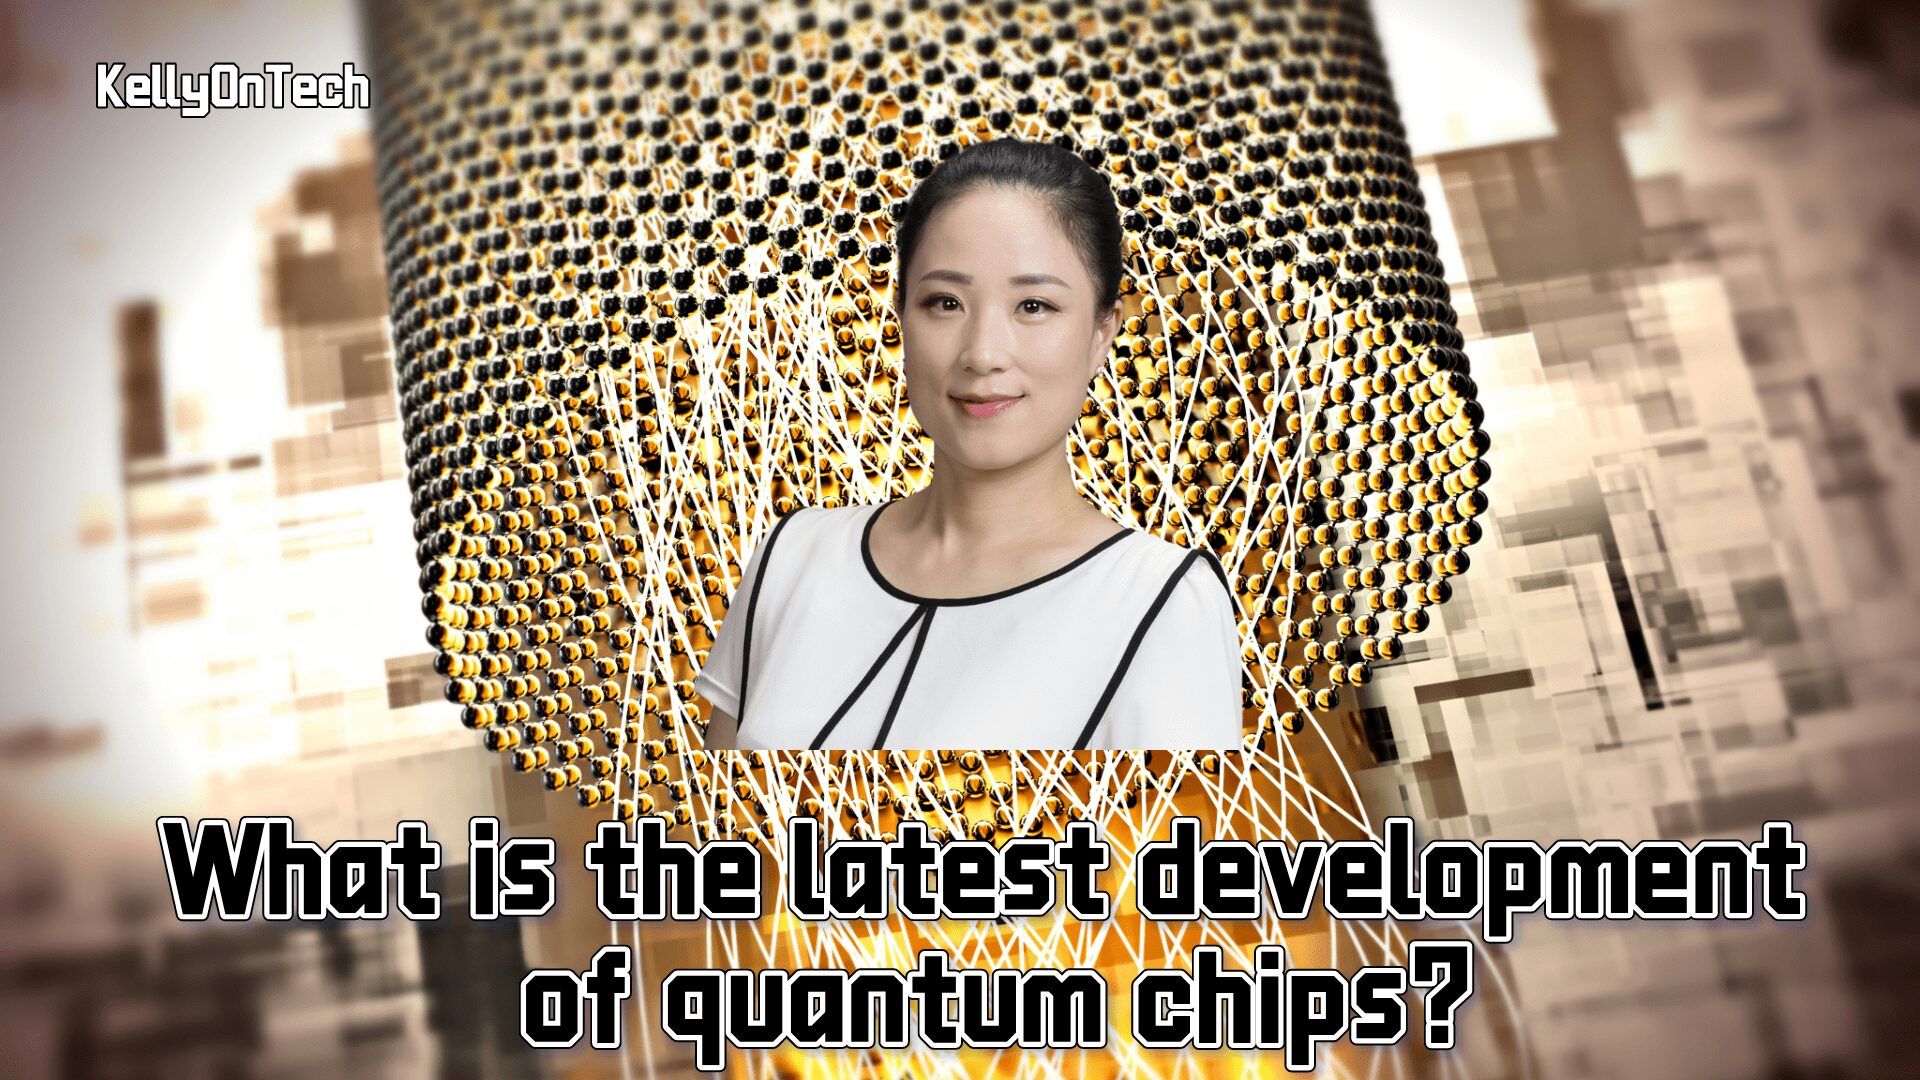 KellyOnTech - What is the latest development of quantum chips